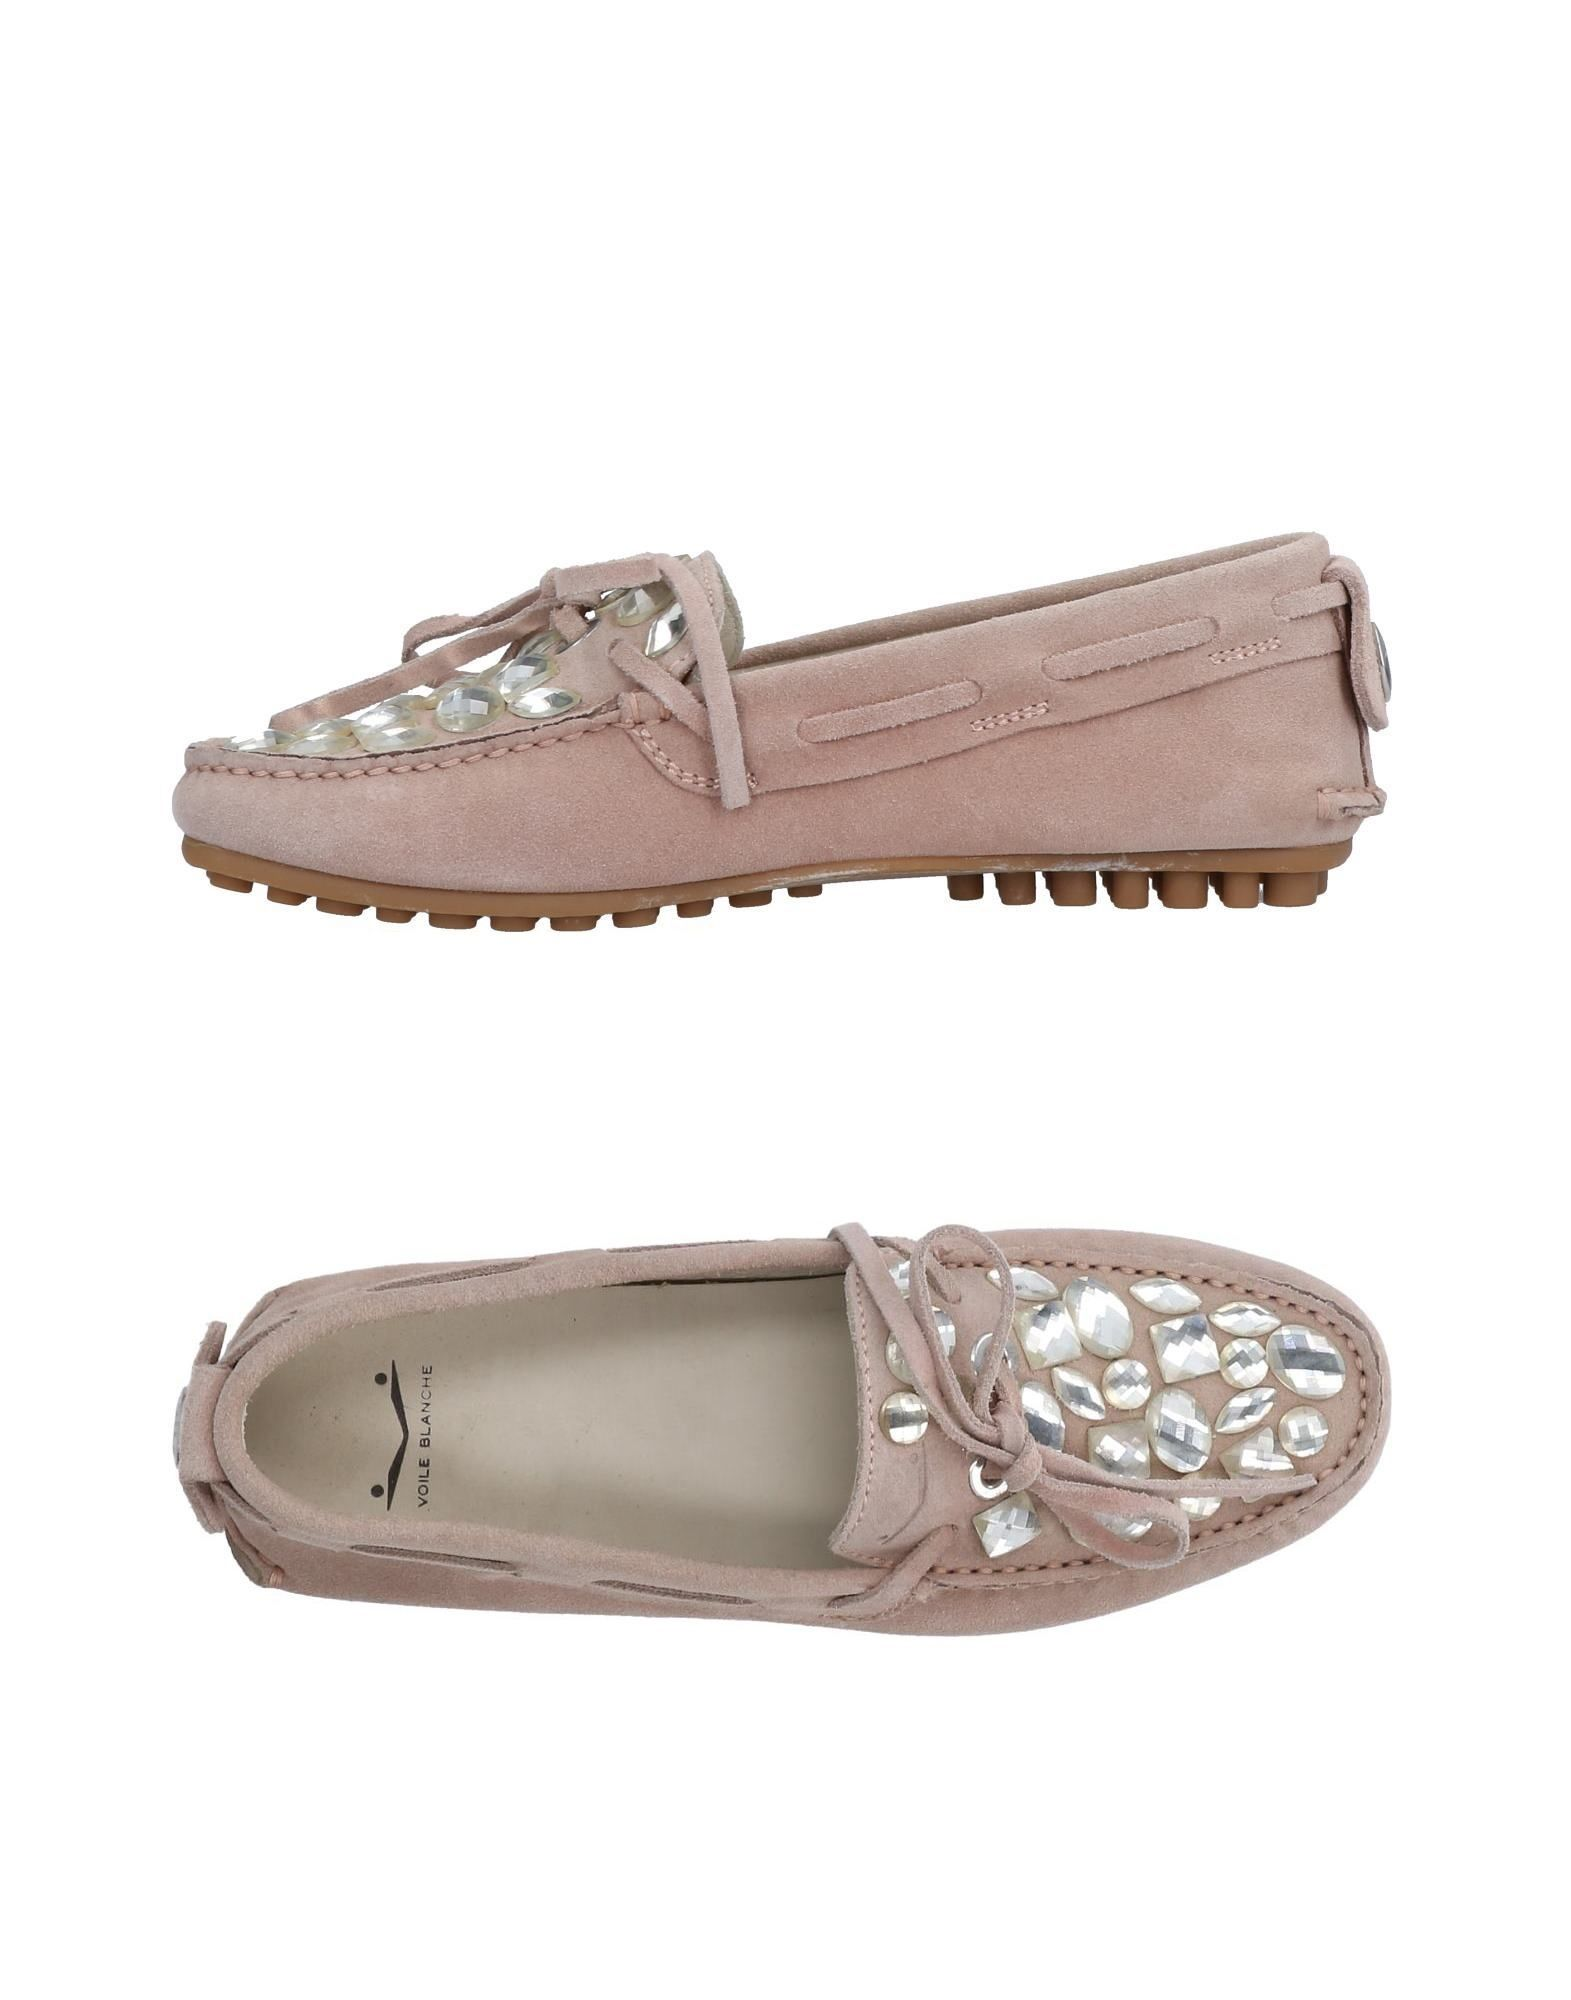 Voile Blanche Loafers - Women Voile Blanche Loafers online on 11502954FW  United Kingdom - 11502954FW on 0a3020